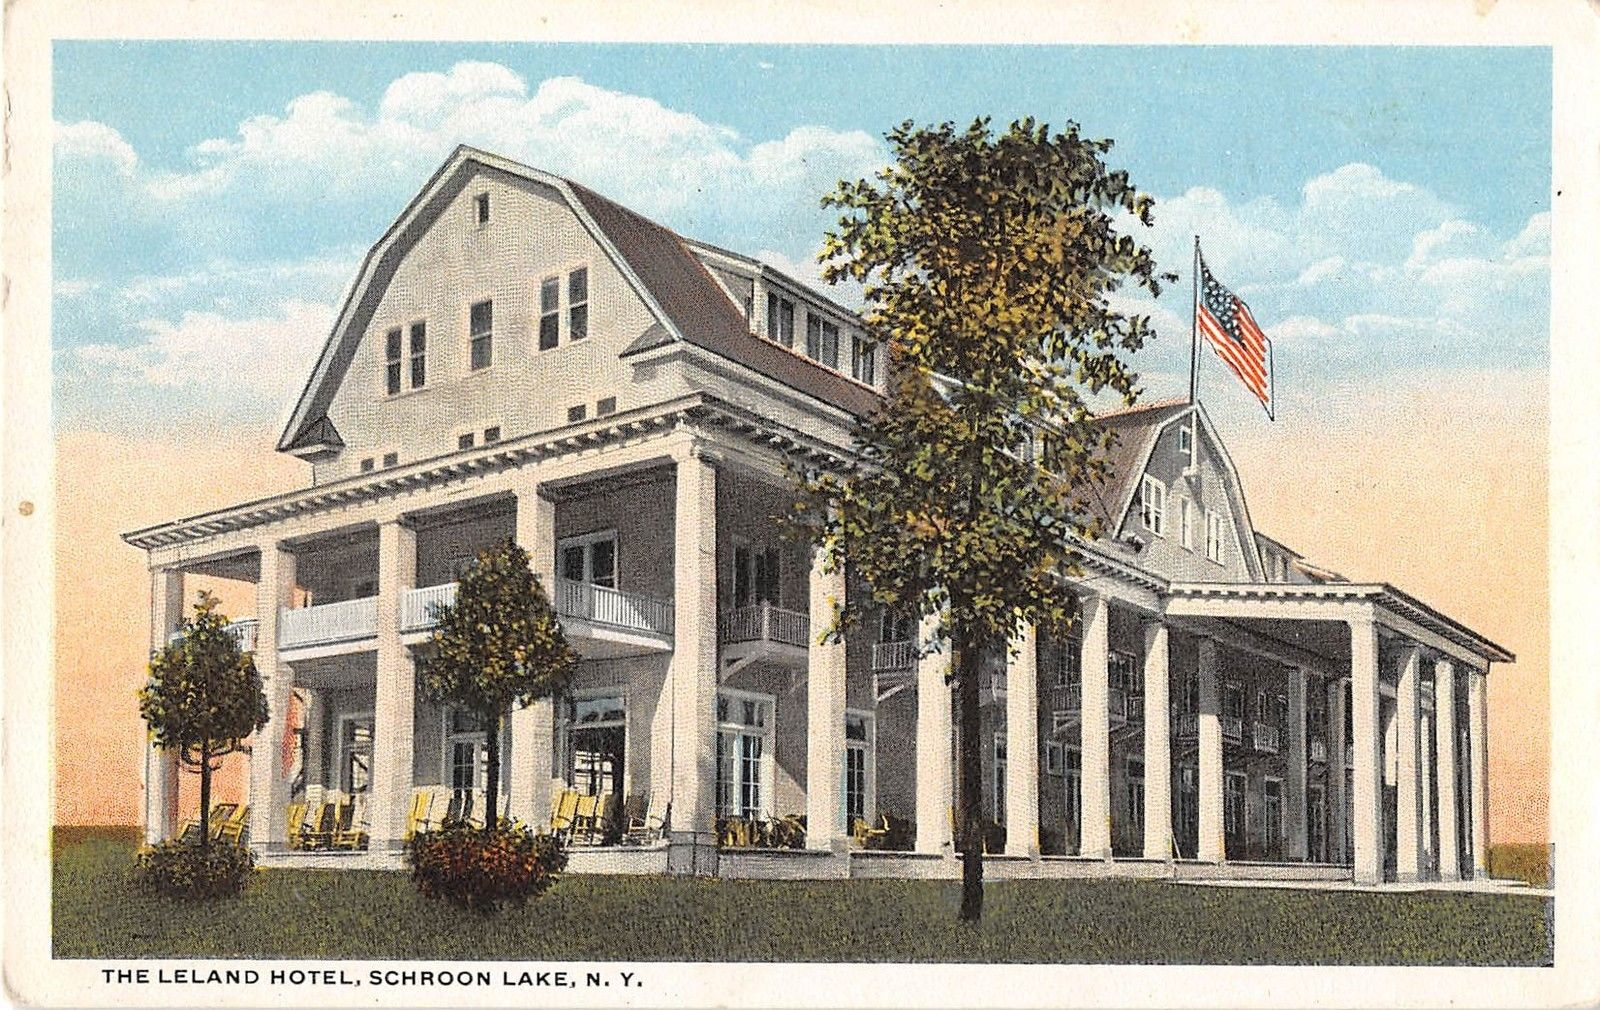 Schroon Lake New York The Leland Hotel Antique Postcard J8453 Mary L Martin Ltd Postcards